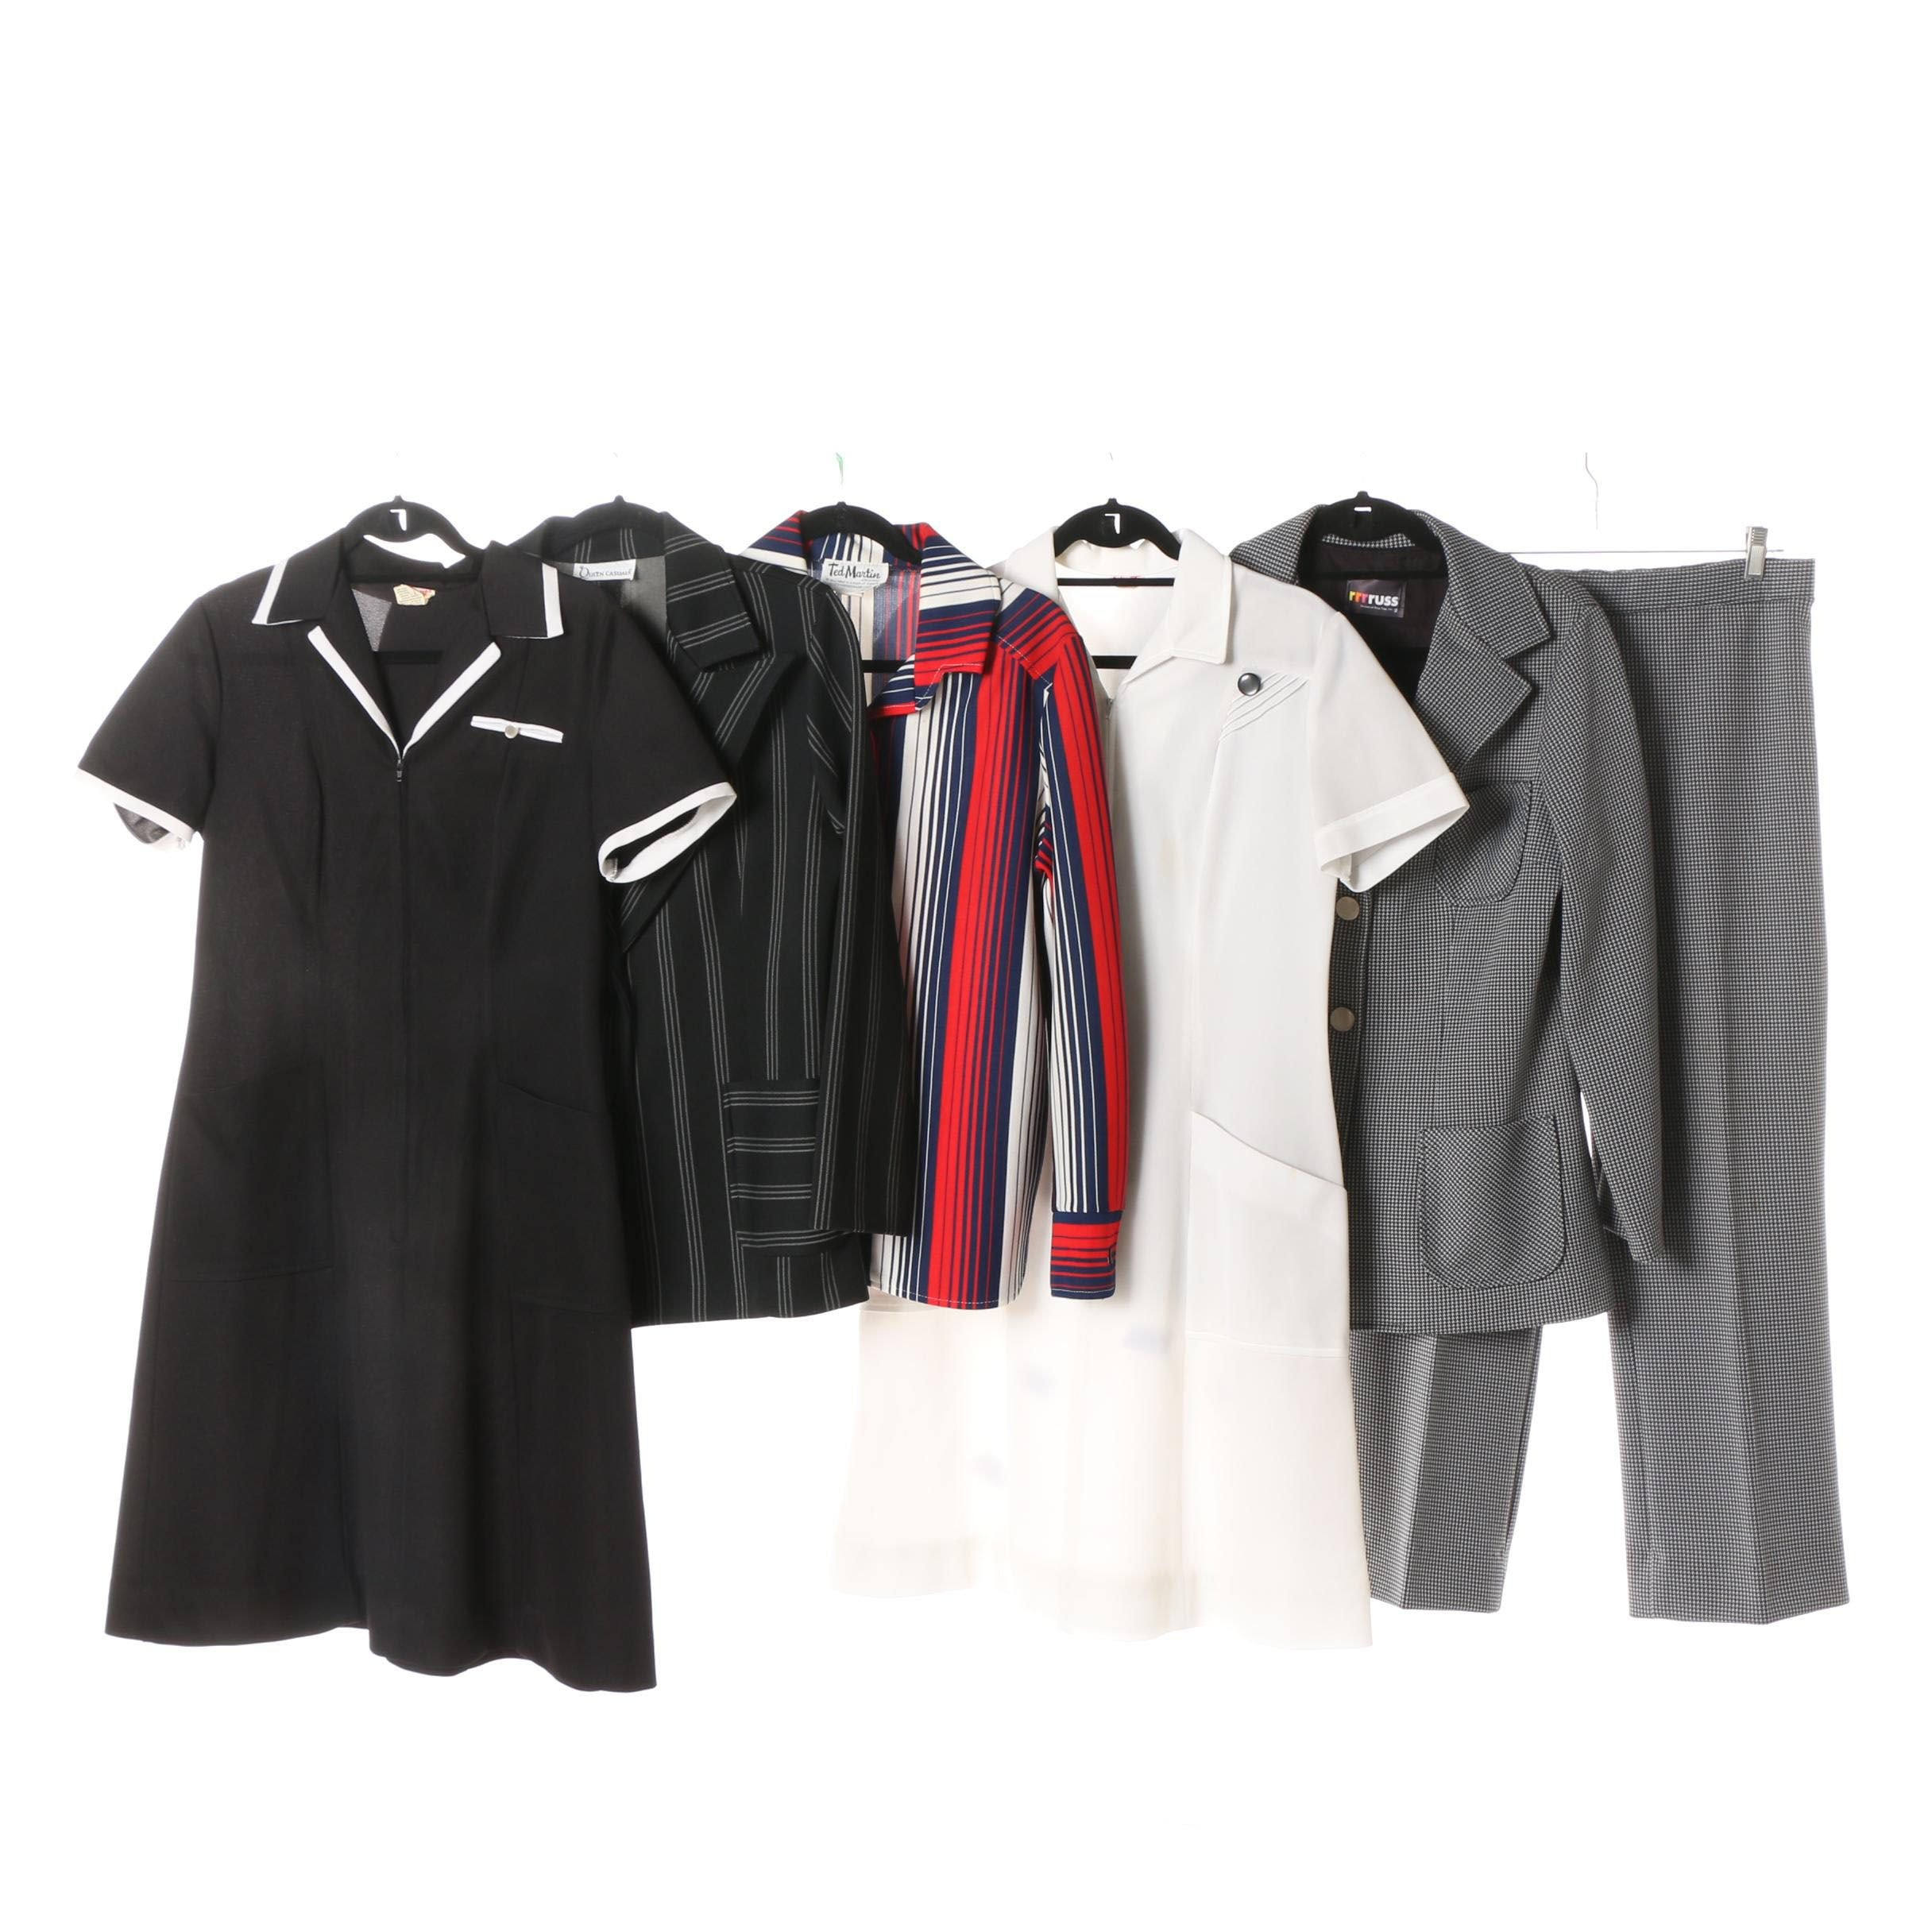 Women's Vintage Pantsuit, Dresses and Jackets including Russ and Ted Martin